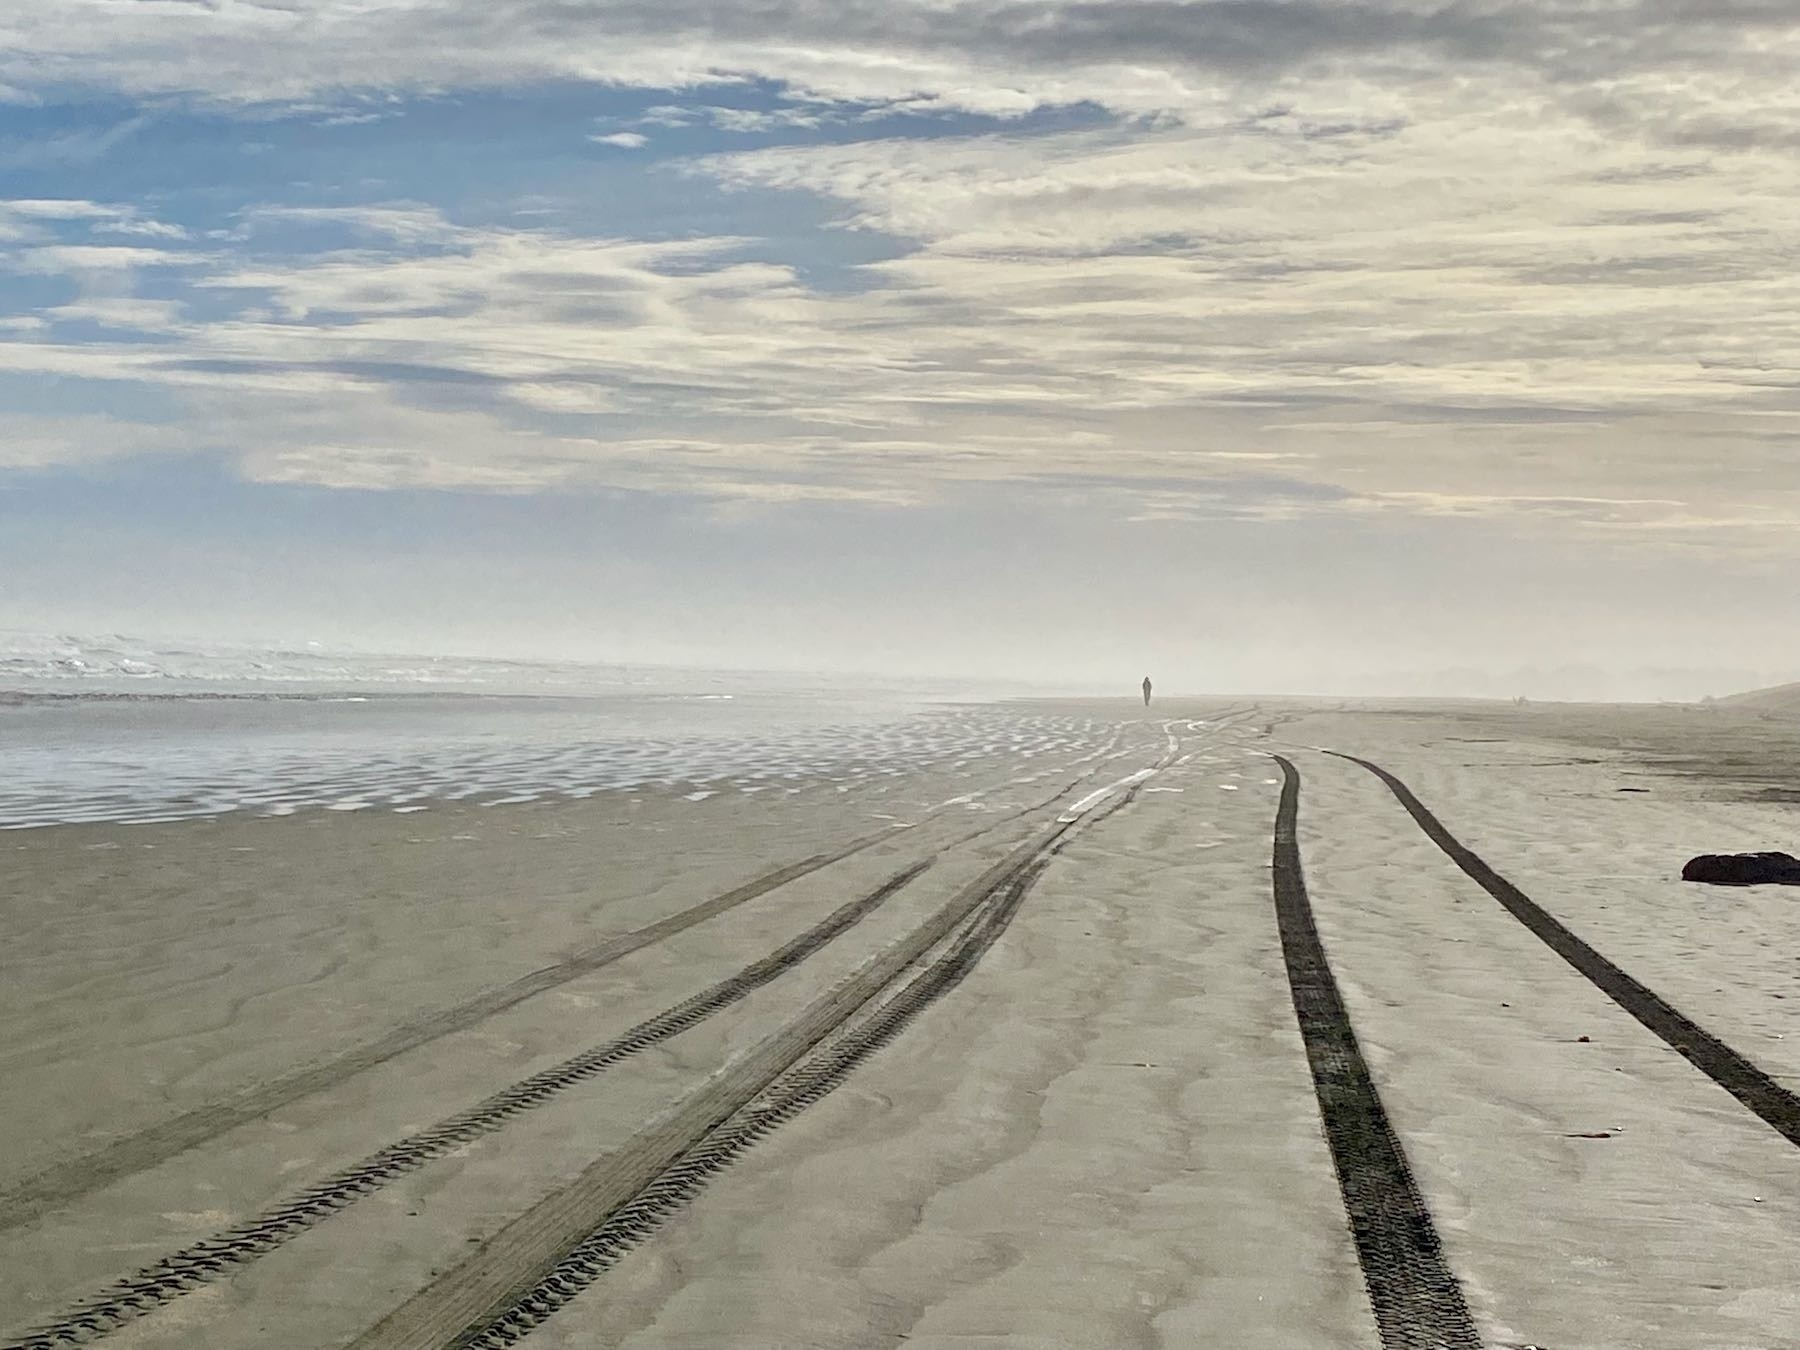 Tire tracks along the beach leading to the distance with a runner receding into the mist.